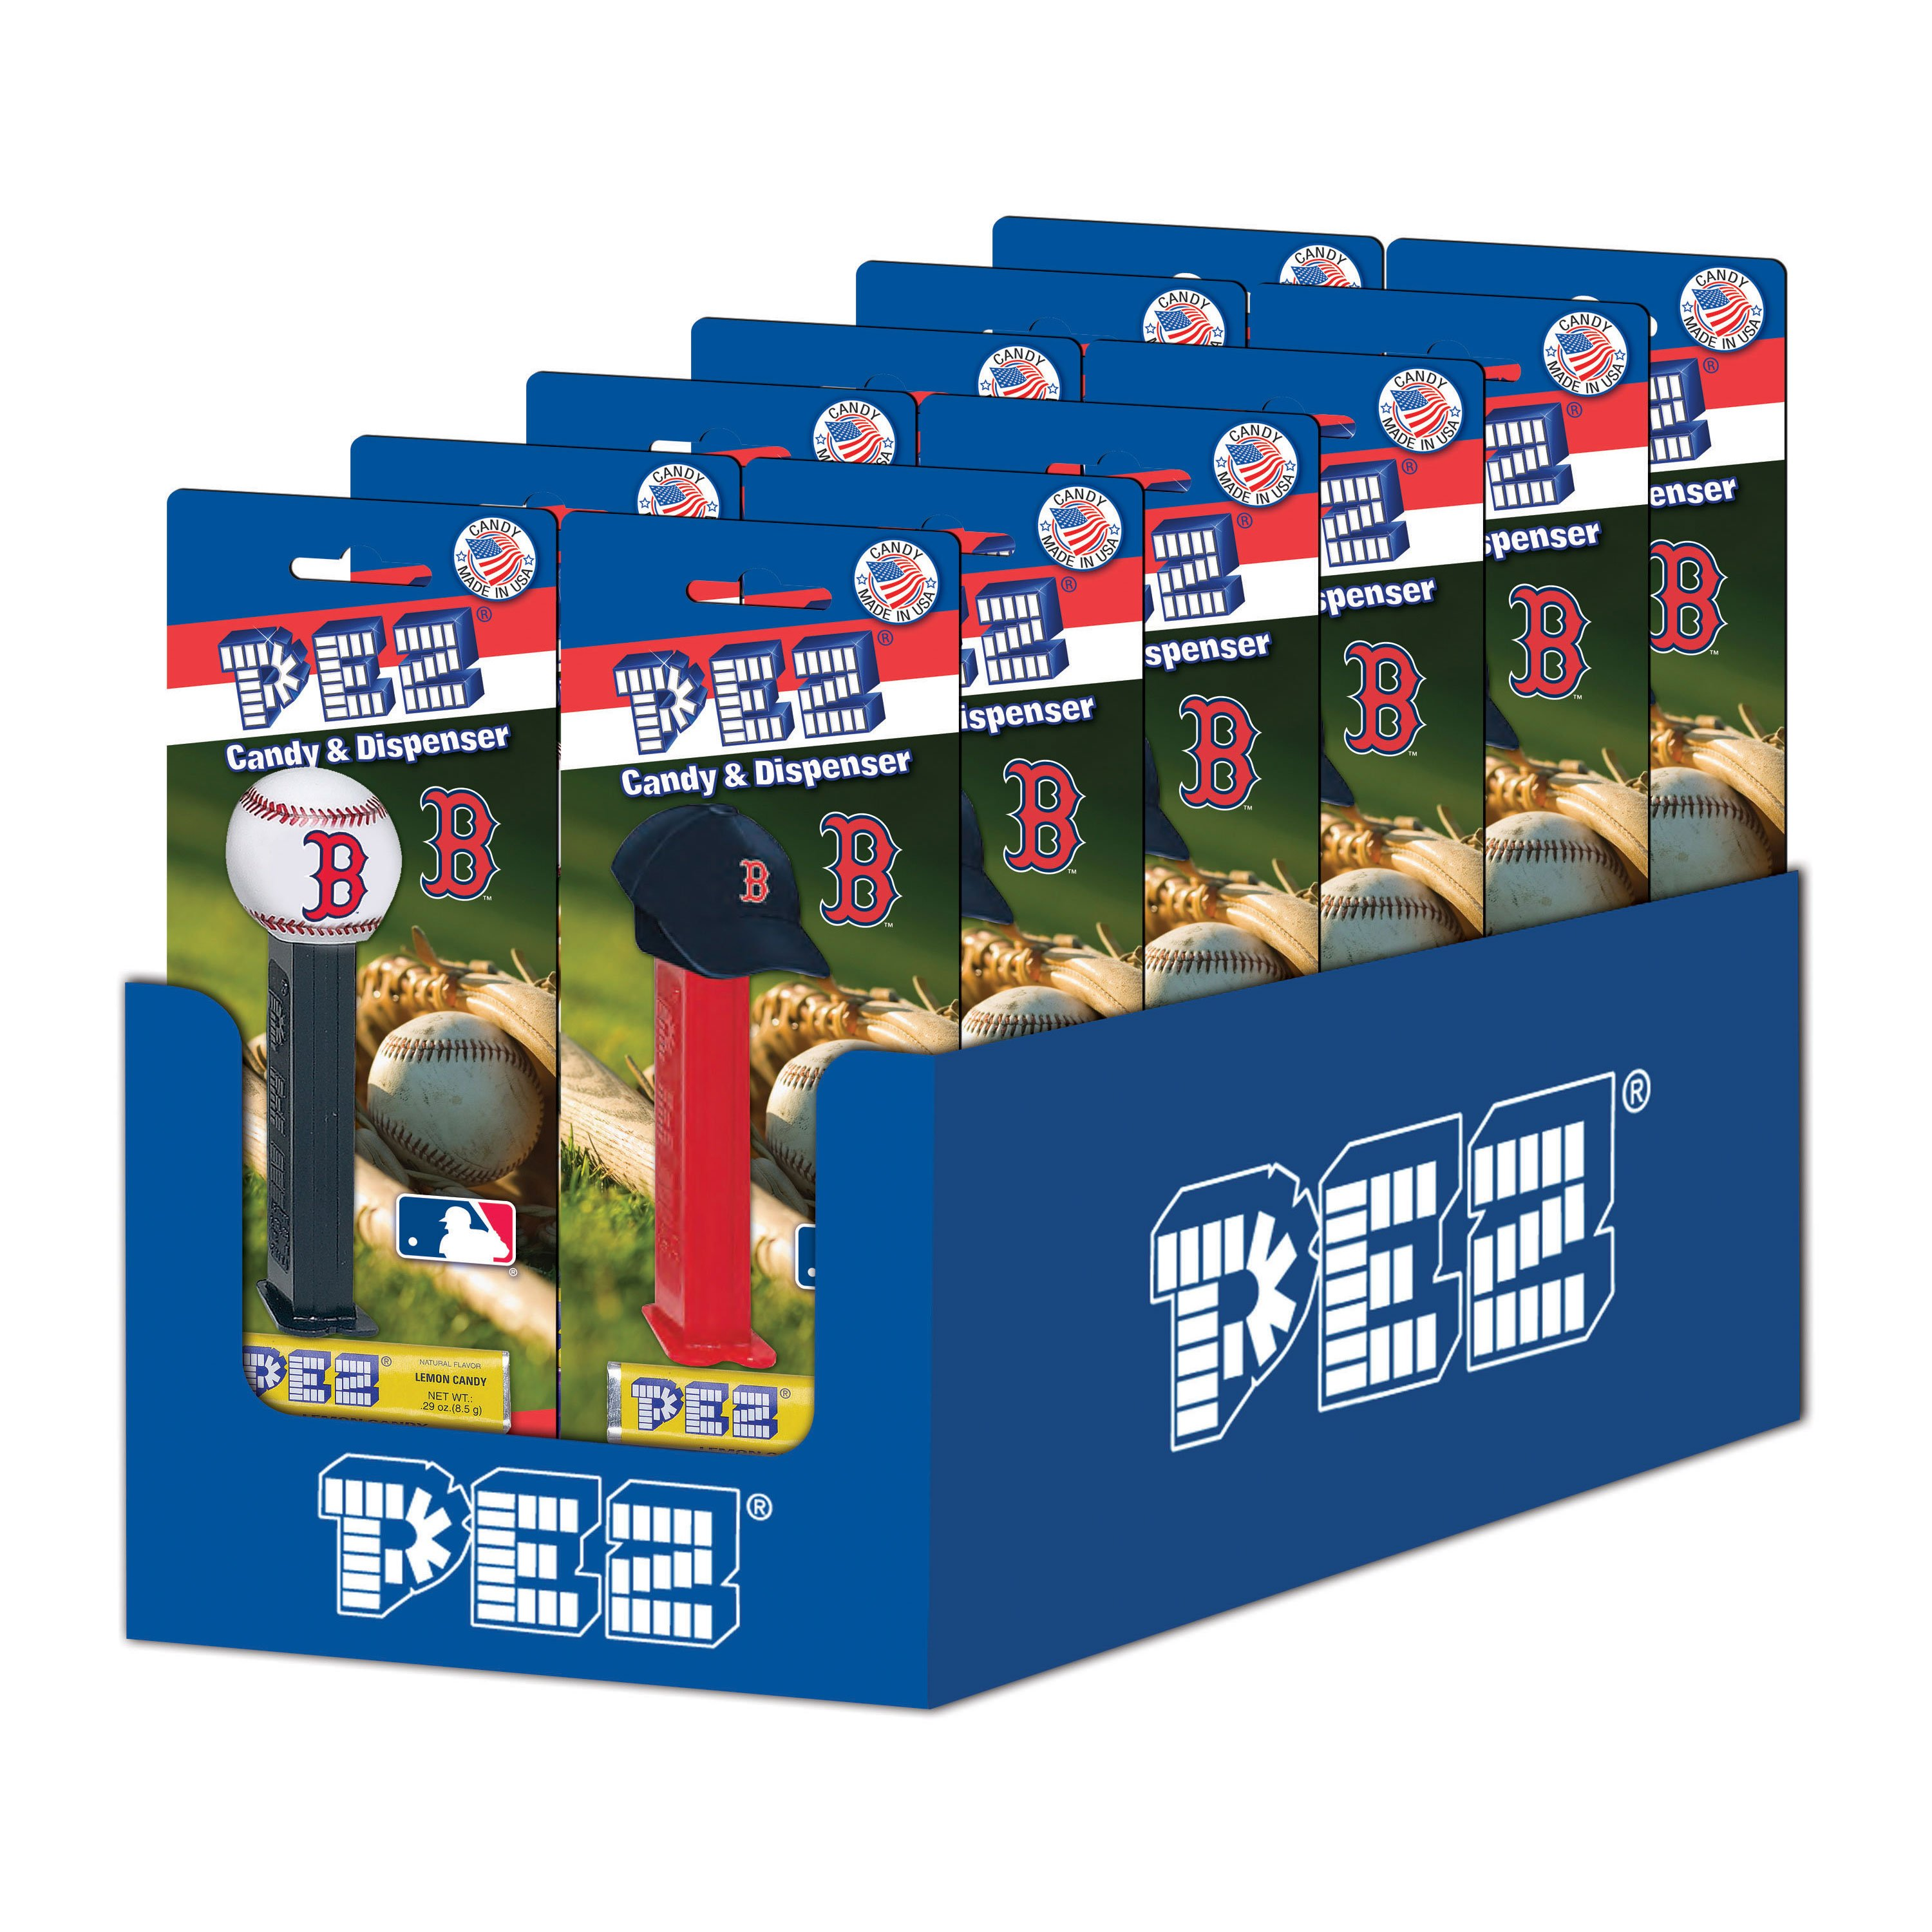 PEZ Candy MLB: Boston Red Sox, candy dispenser with 3 rolls of assorted fruit candy, box of 12